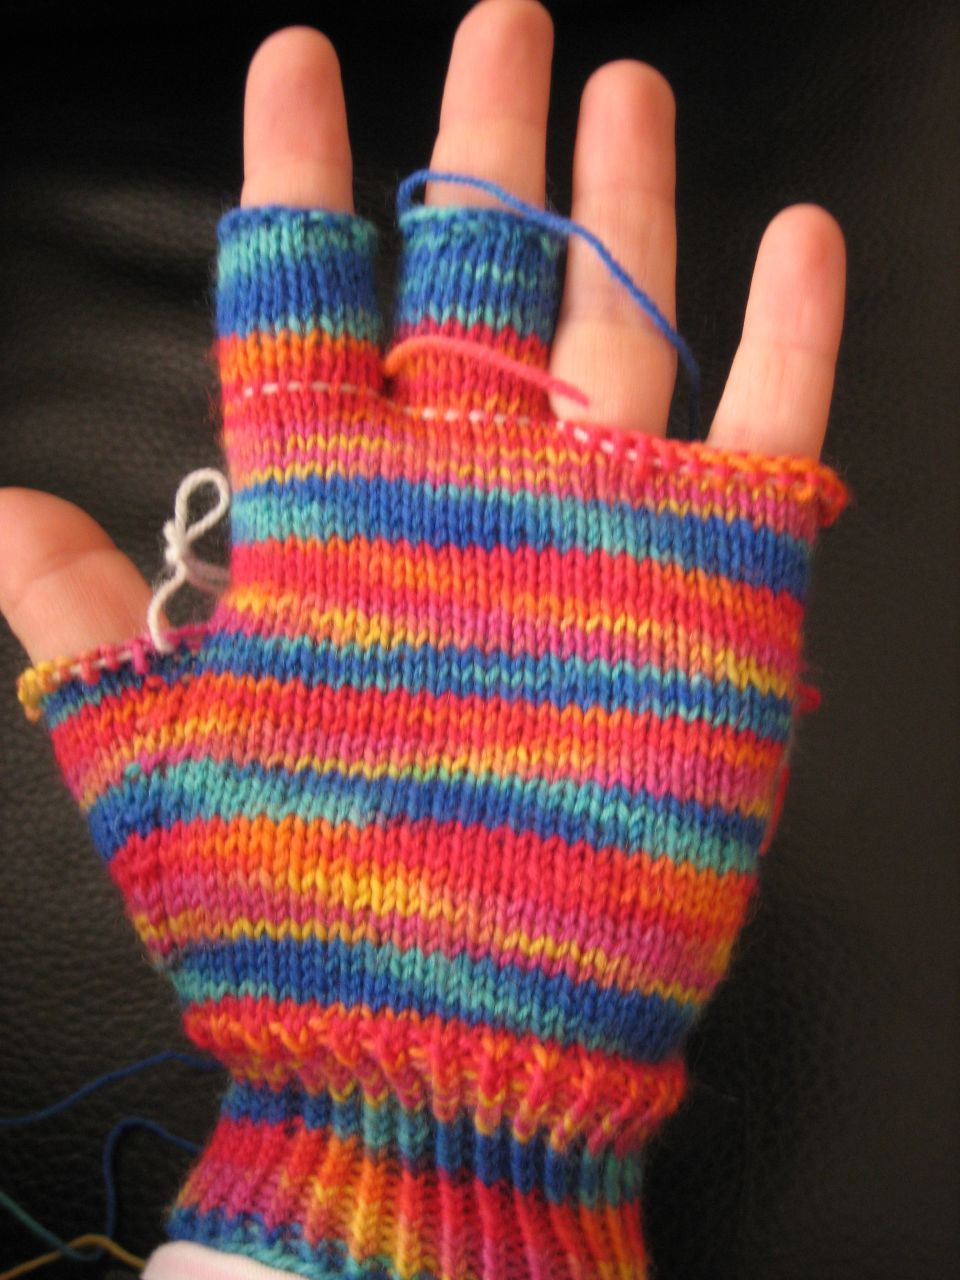 Hooray for me! fingerless gloves